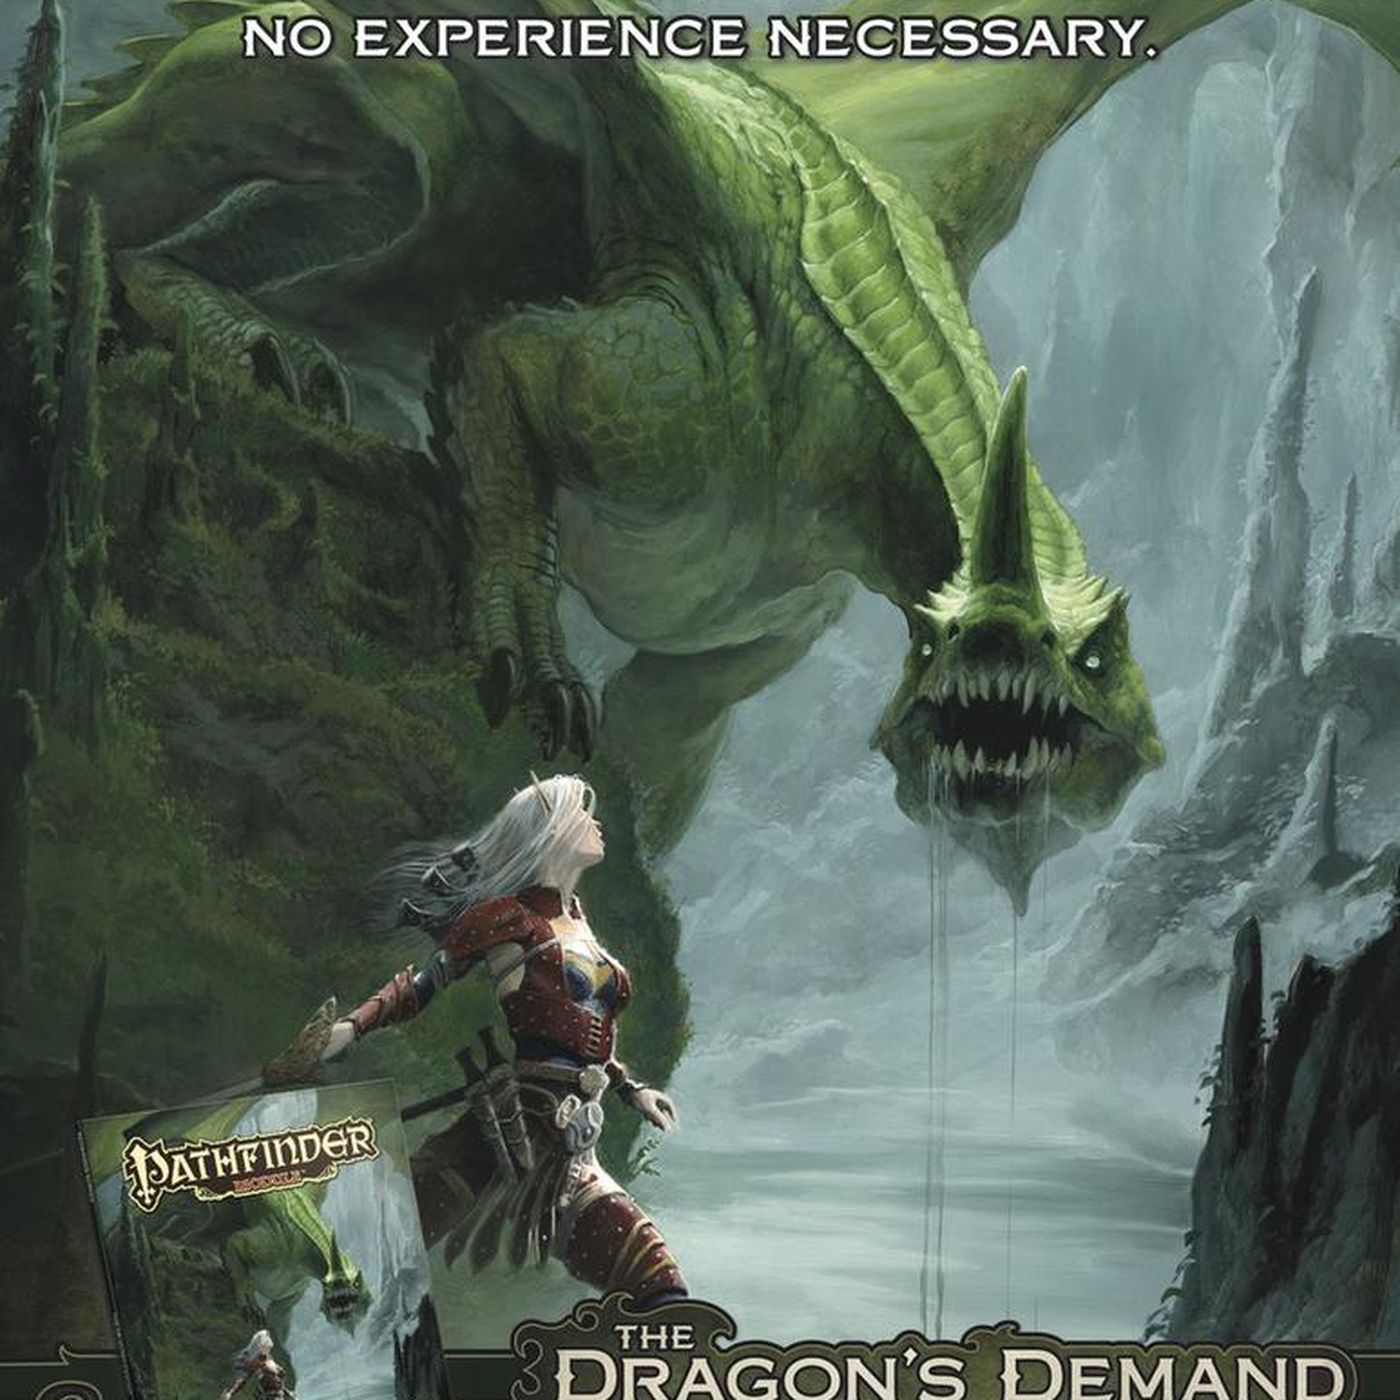 Pathfinder: 'Dragon's Demand' great example of a quality